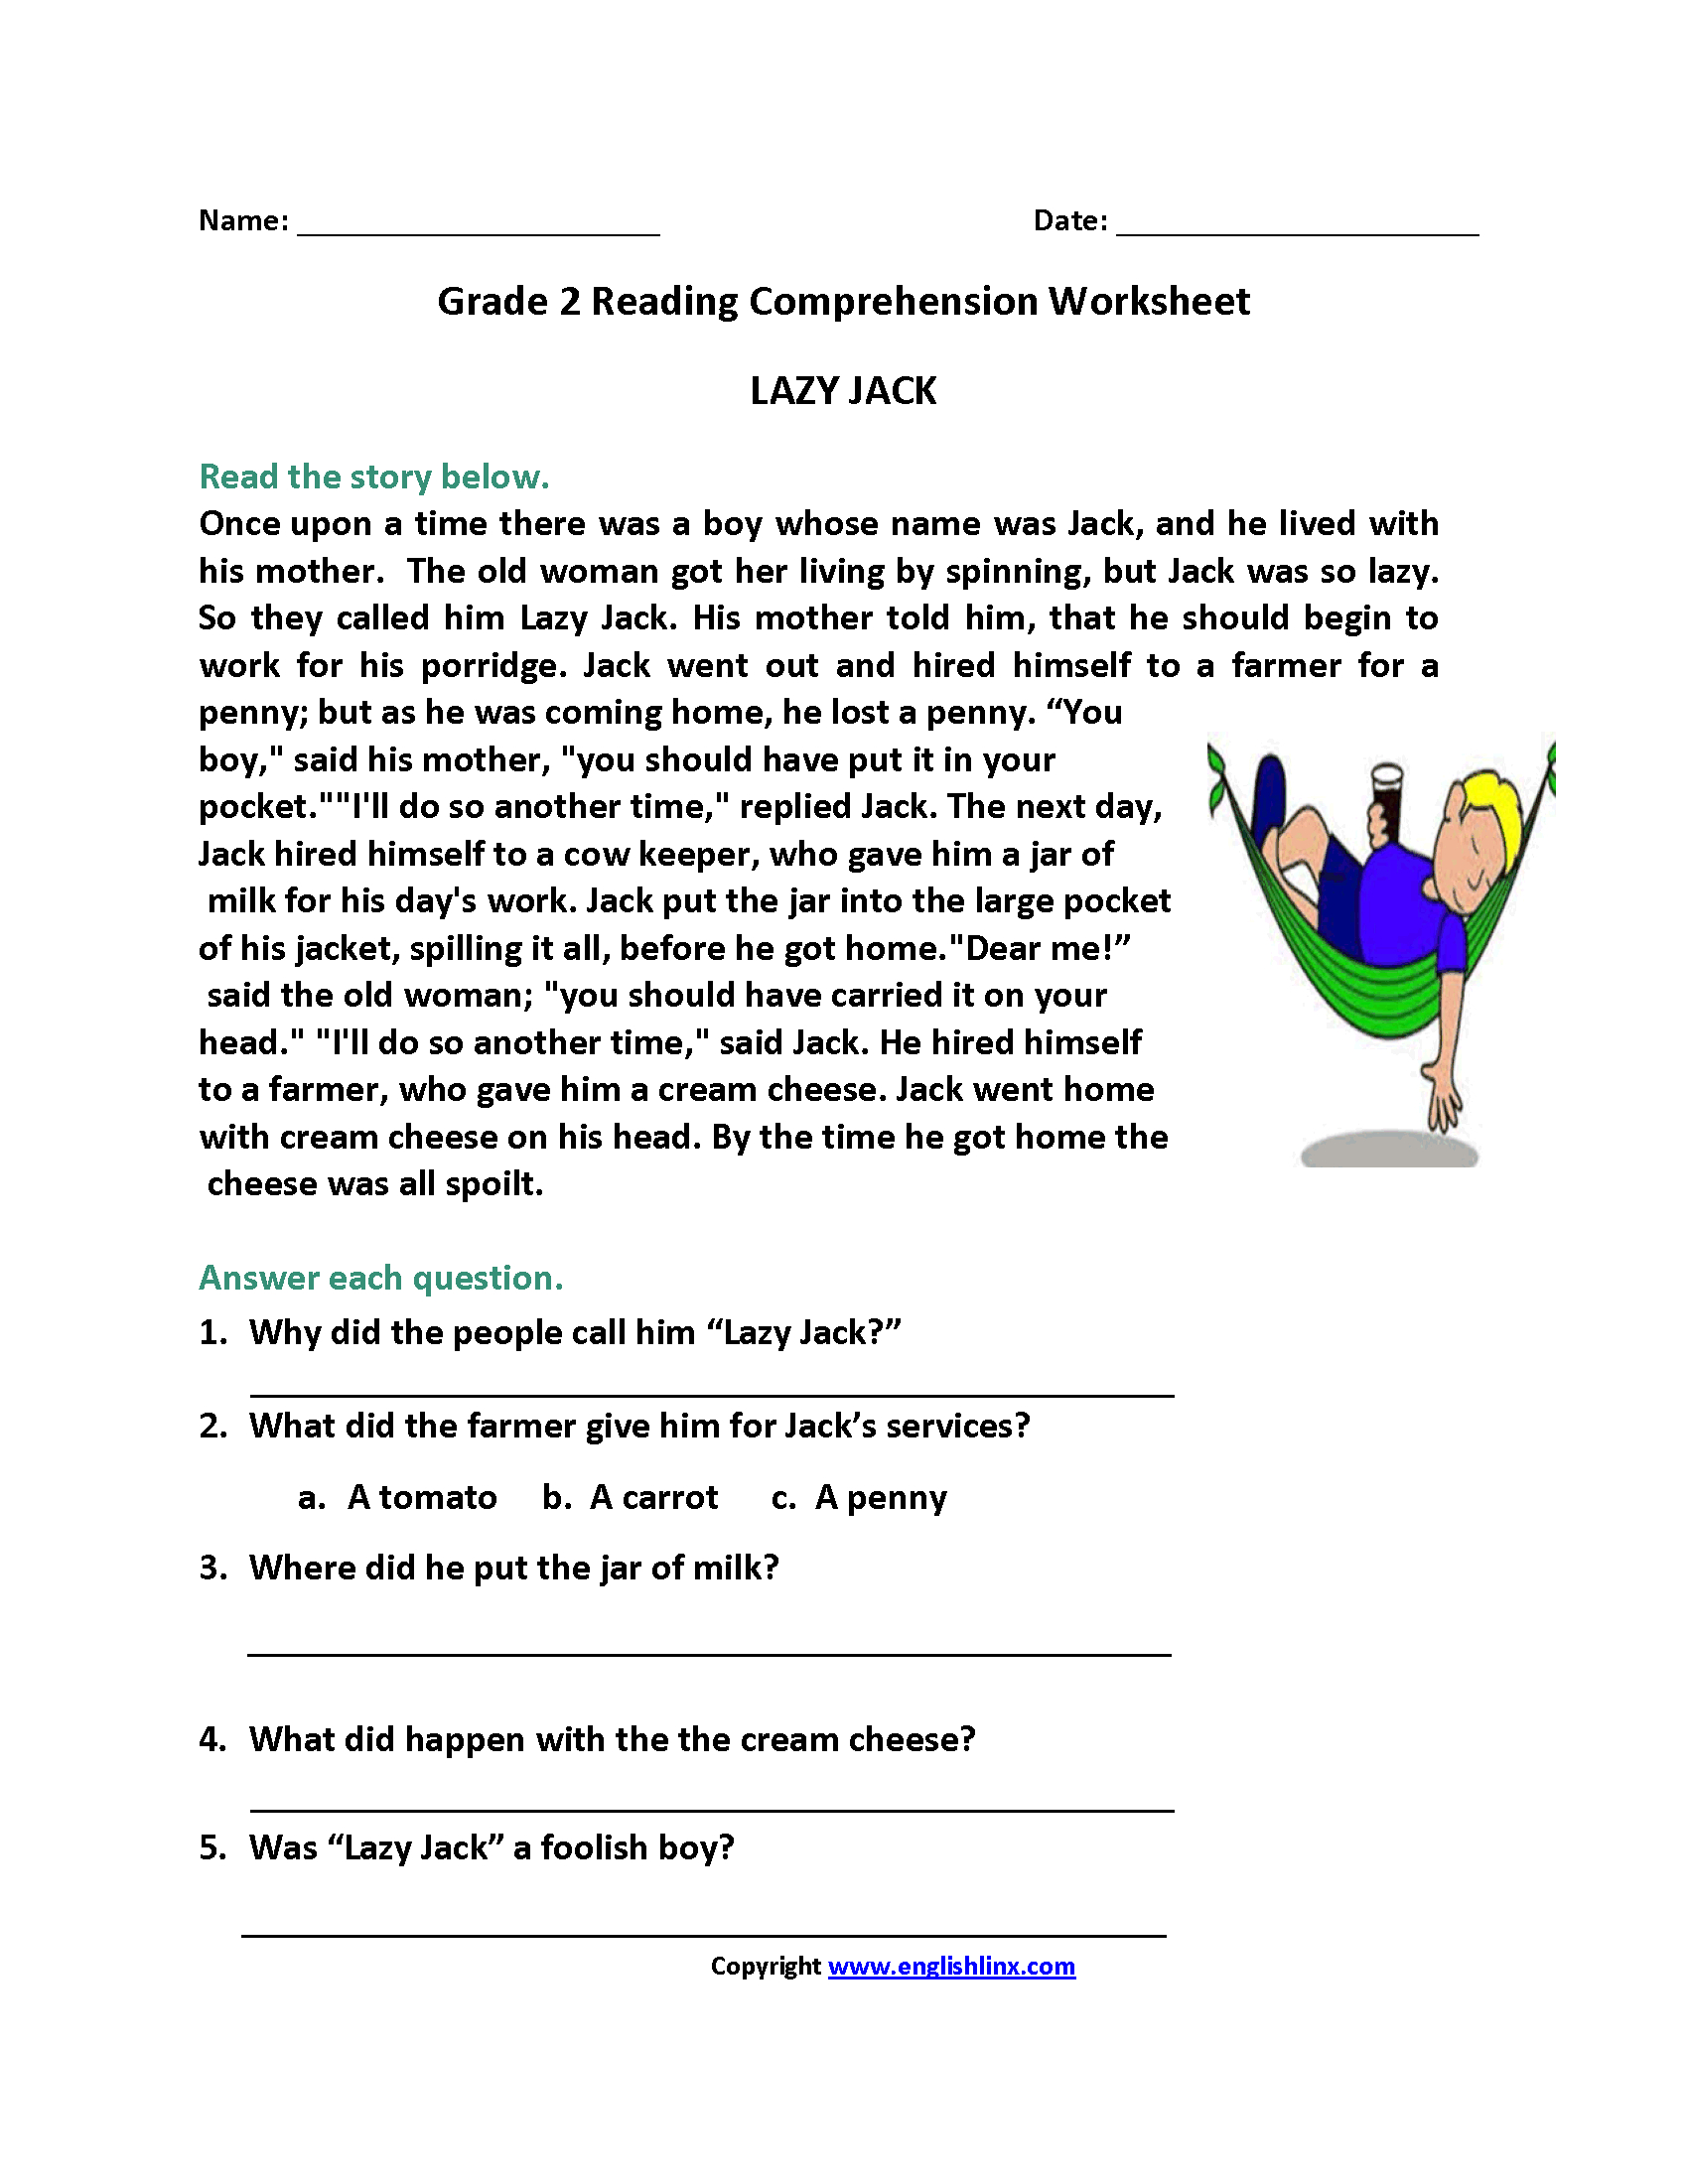 Reading Worksheets | Second Grade Reading Worksheets | Second Grade Reading Comprehension Printable Worksheets